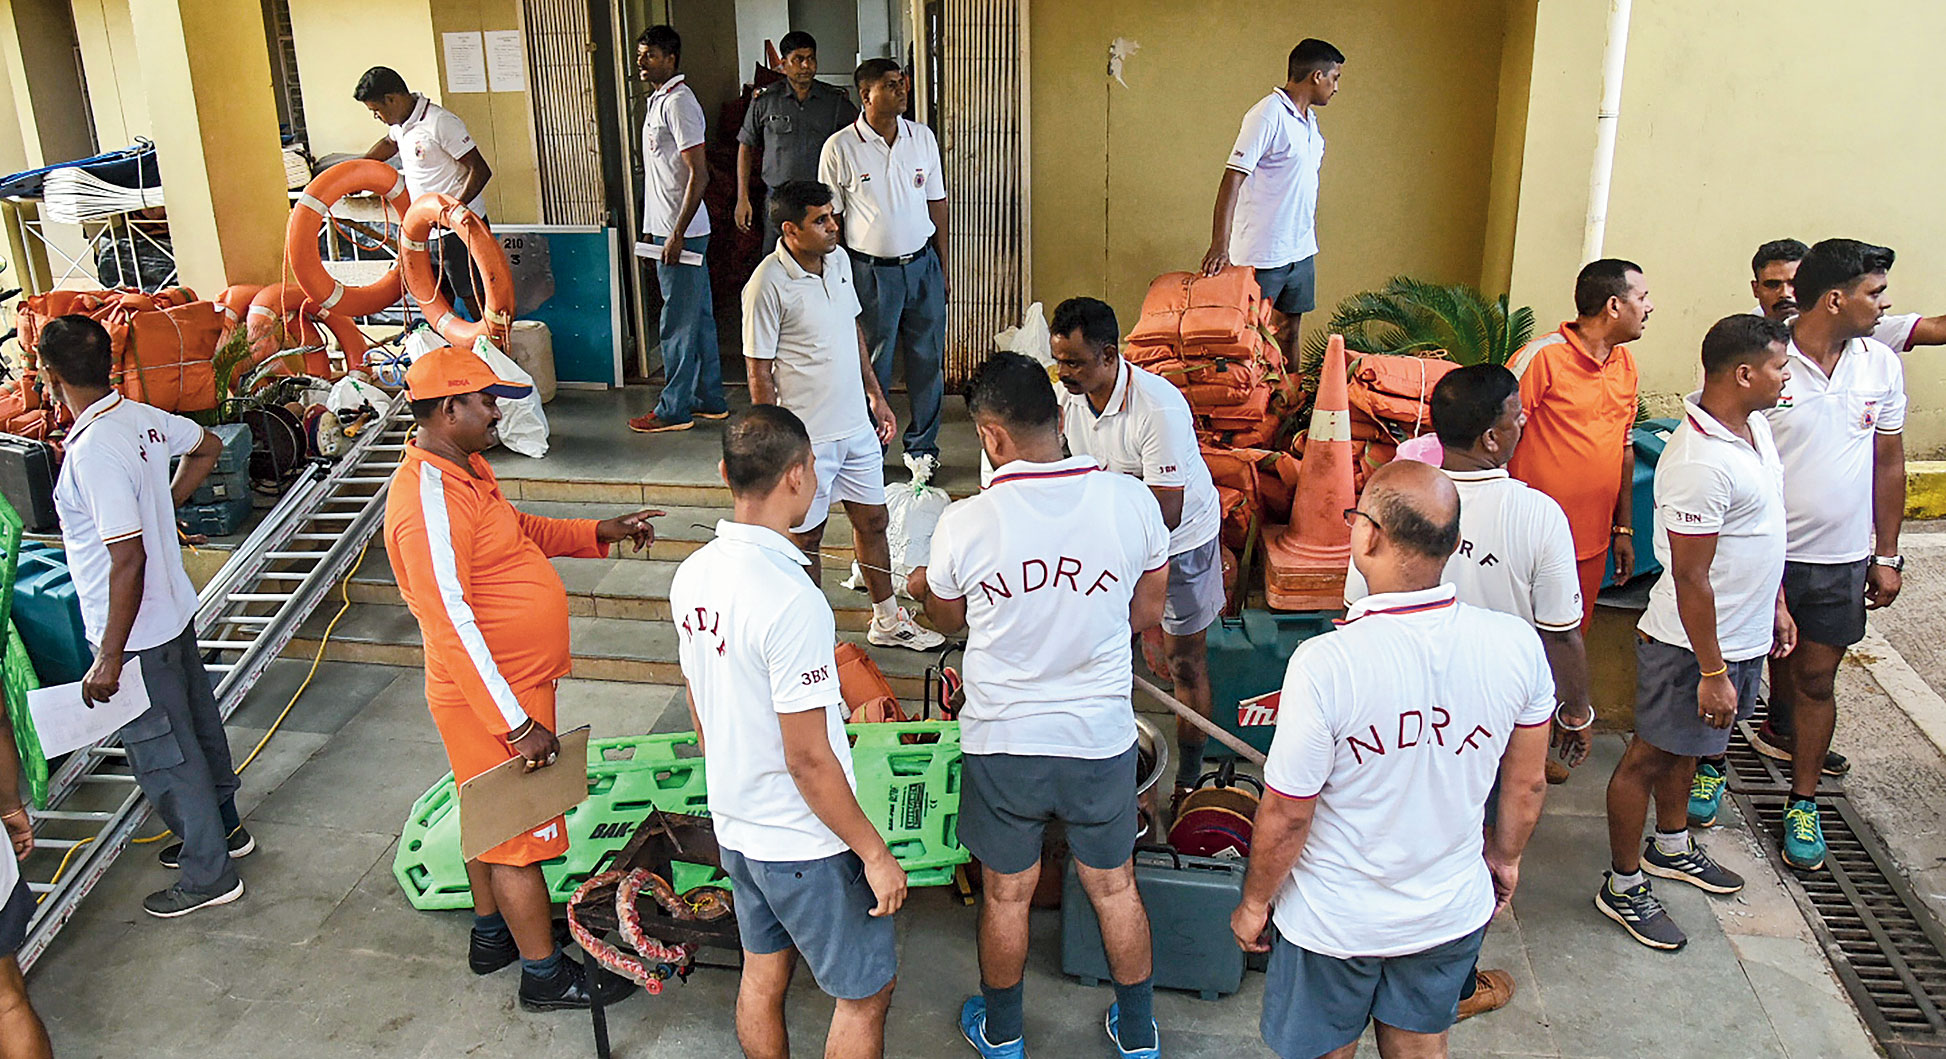 NDRF personnel busy readying rescue equipment in Bhubaneswar, days before Cyclone Fani hit Odisha.